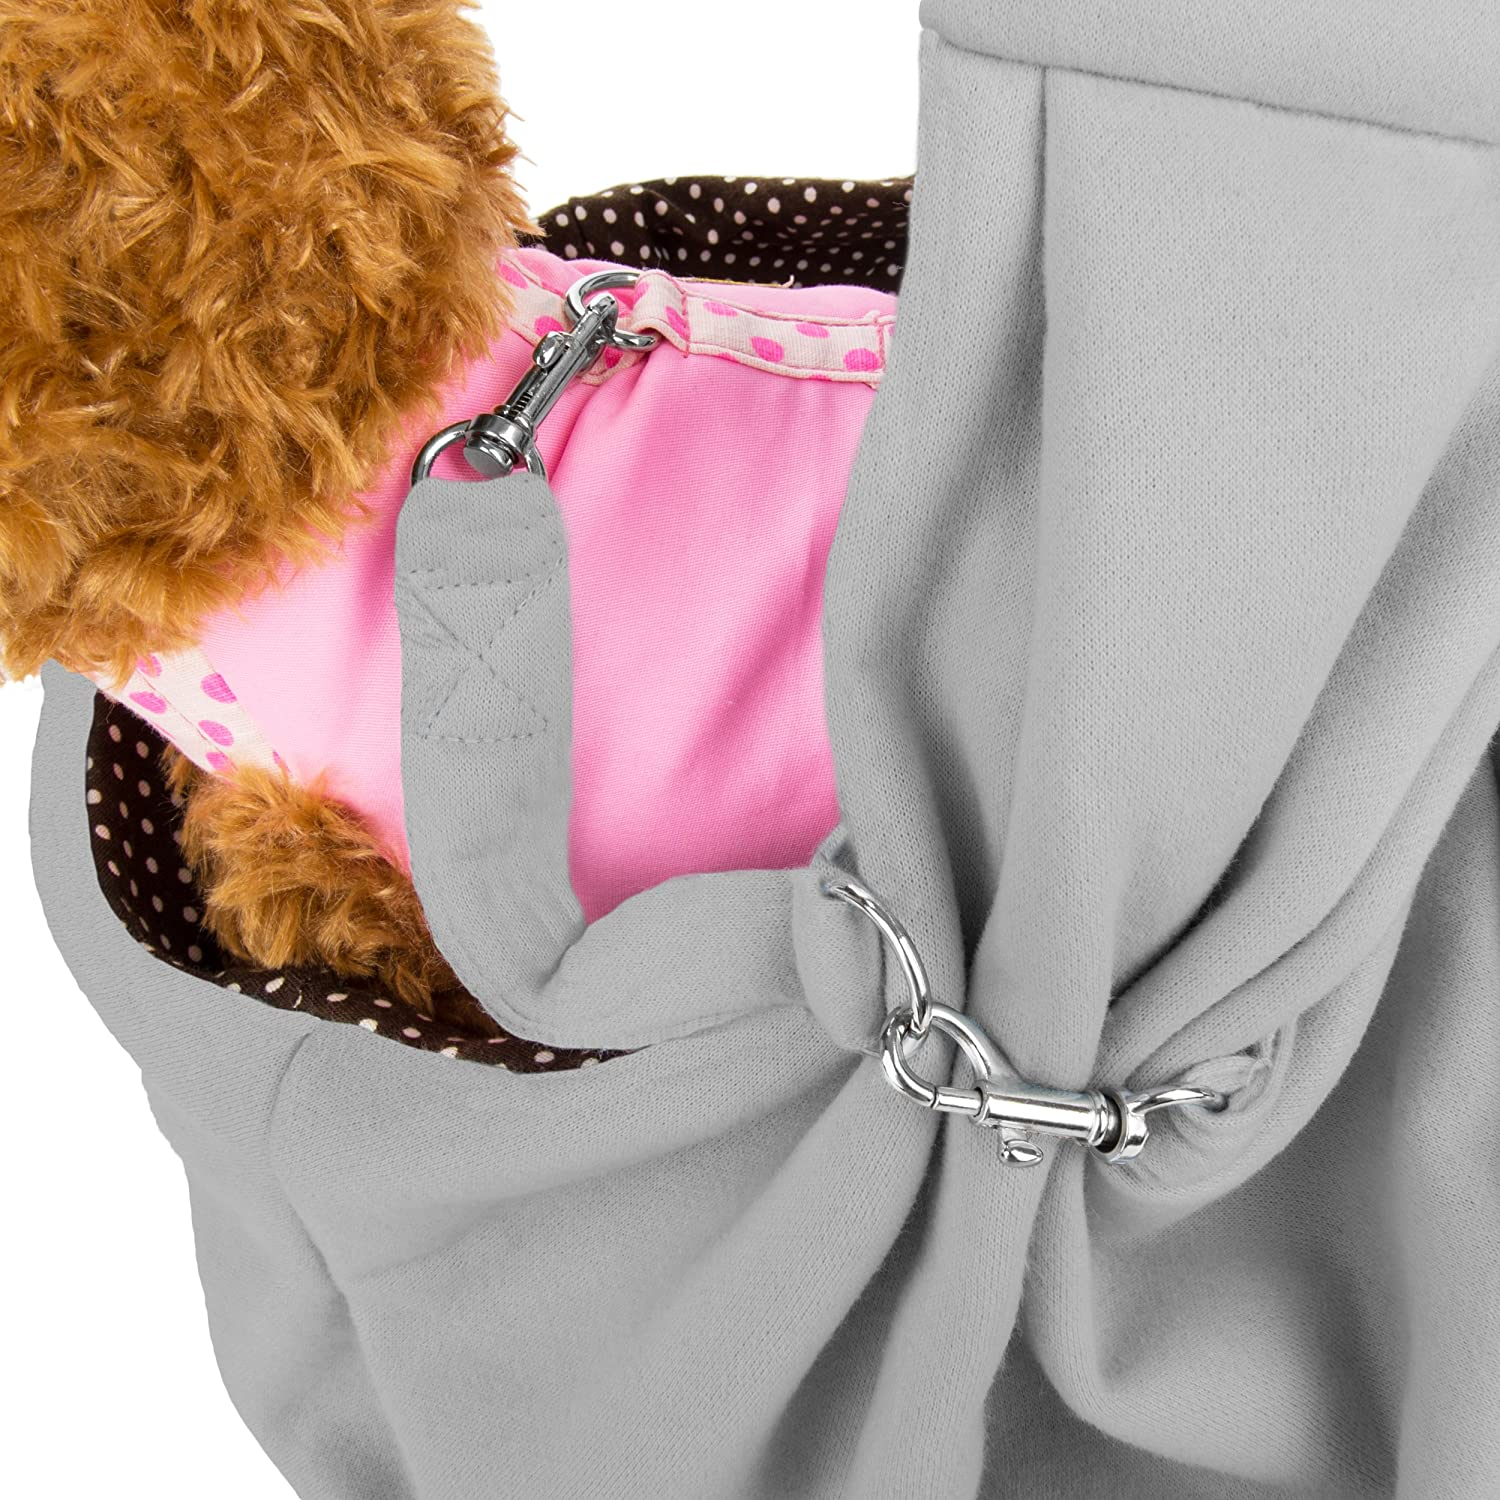 CUE CUE Pet 100% Plush Cotton Reversible Pet Sling Carrier Suitable for Small to Medium Sized Dogs, Cats, Rabbits, Pet's Ash Gray